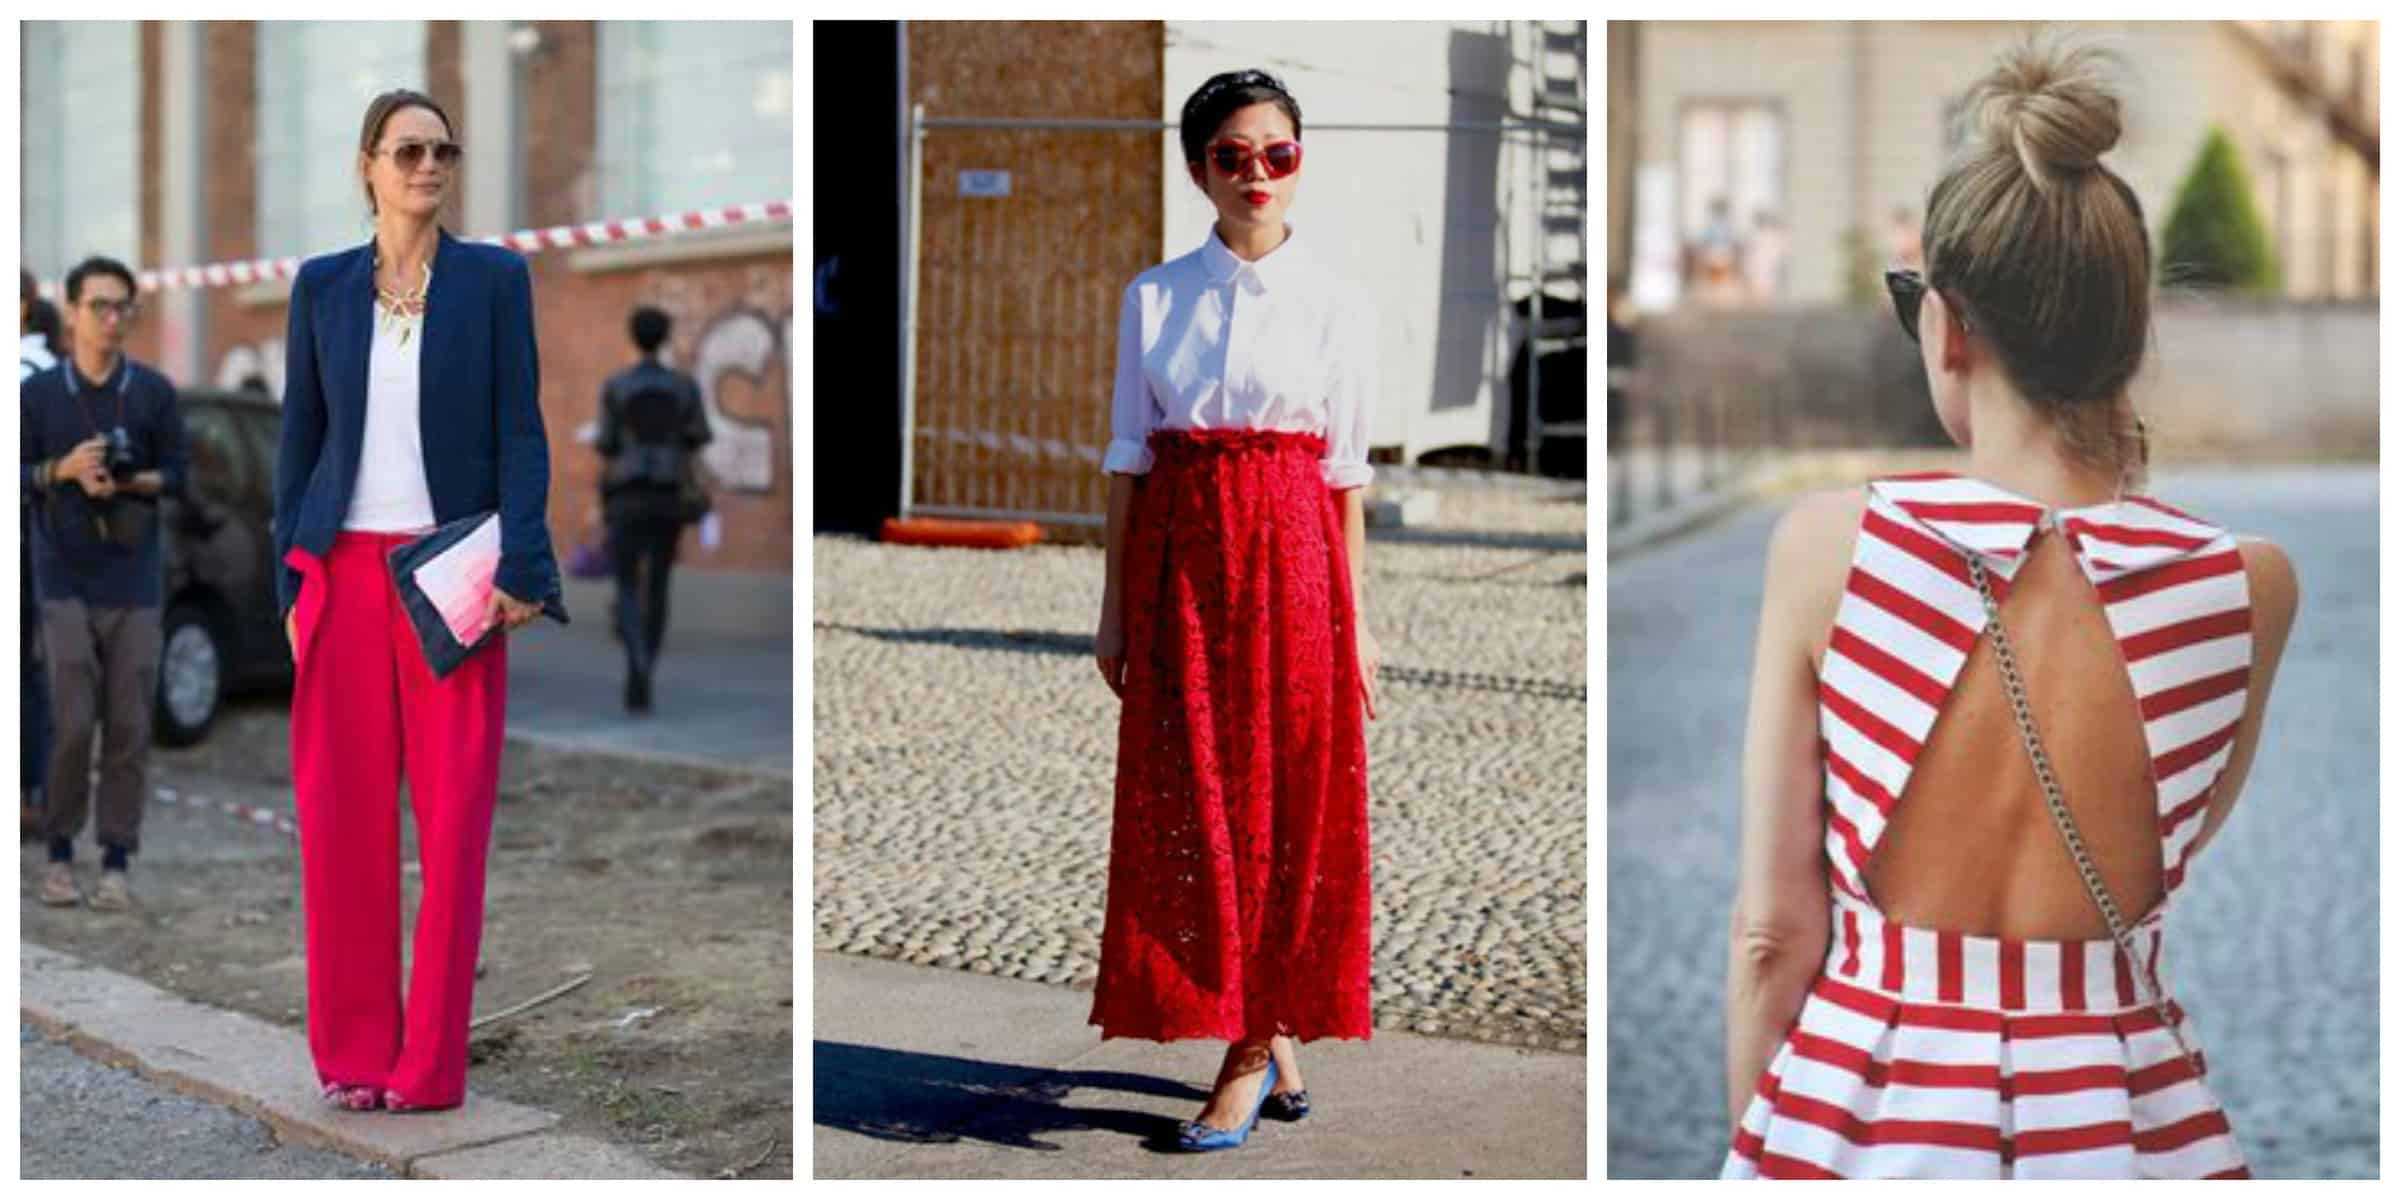 4th-july-street-style